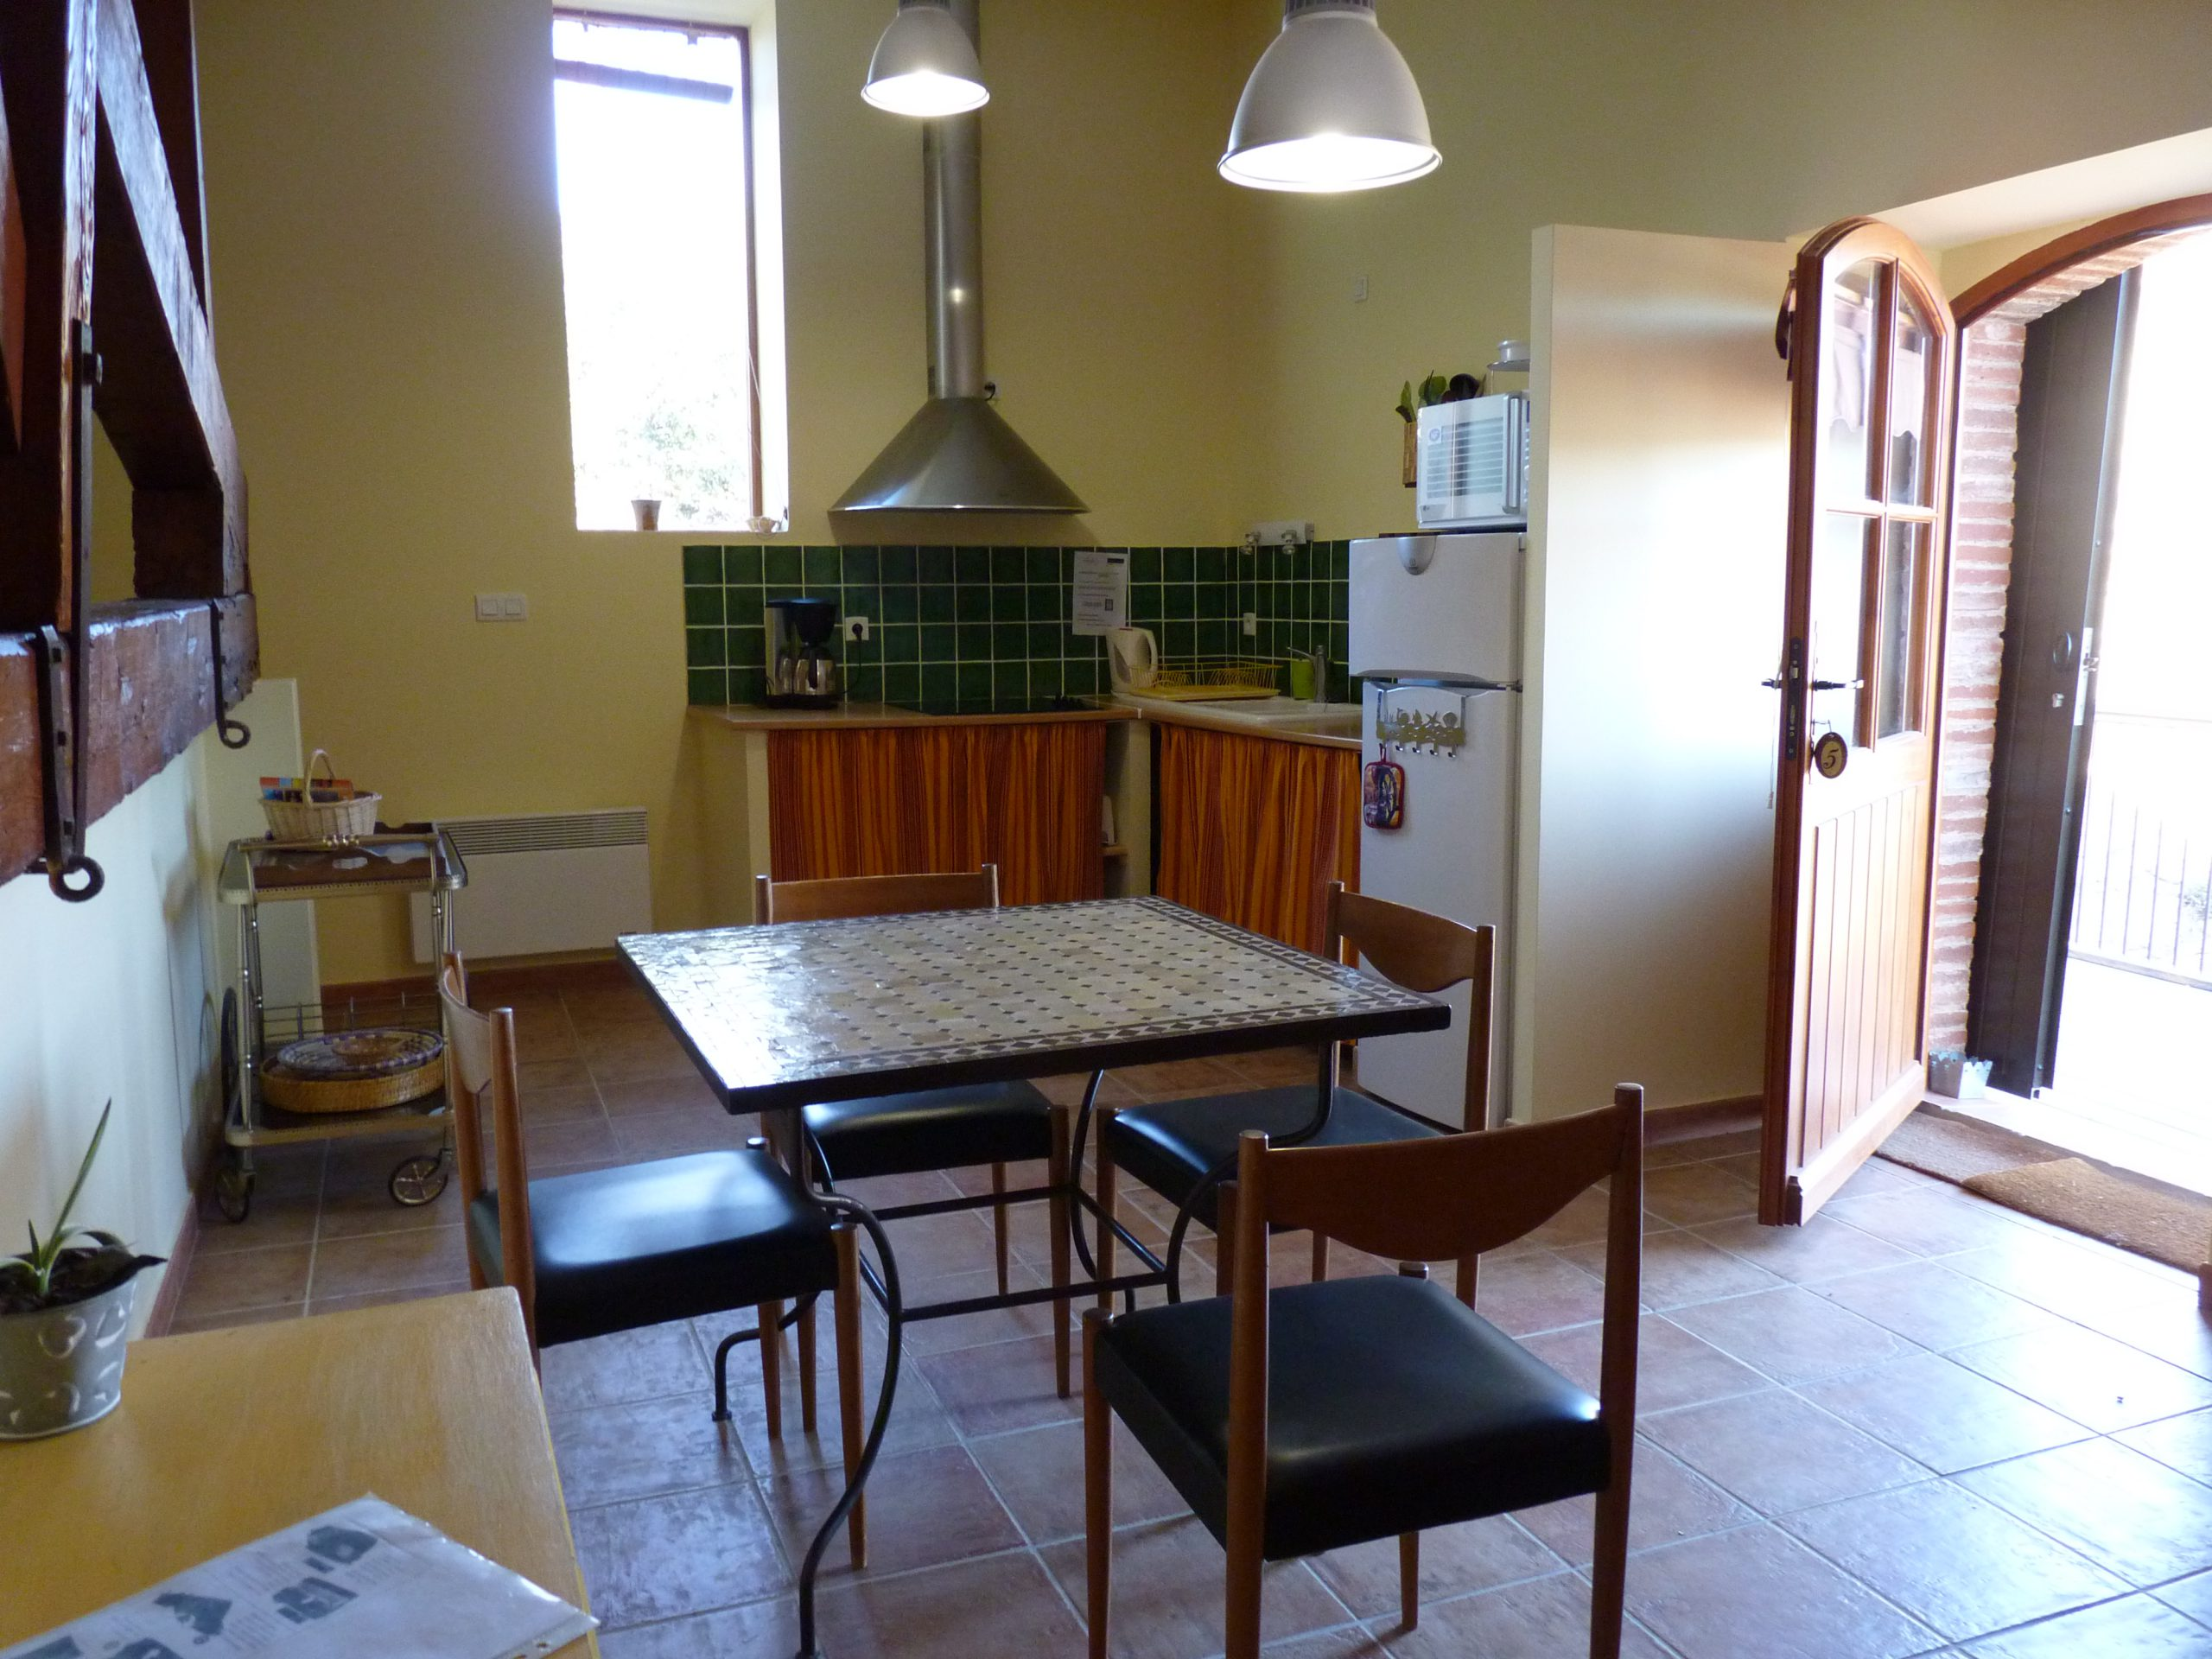 appartement-studio-location-domaine-valcros-paulilles-port-vendres-chambres-hotes-domaine-valcros-banyuls-collioure-1